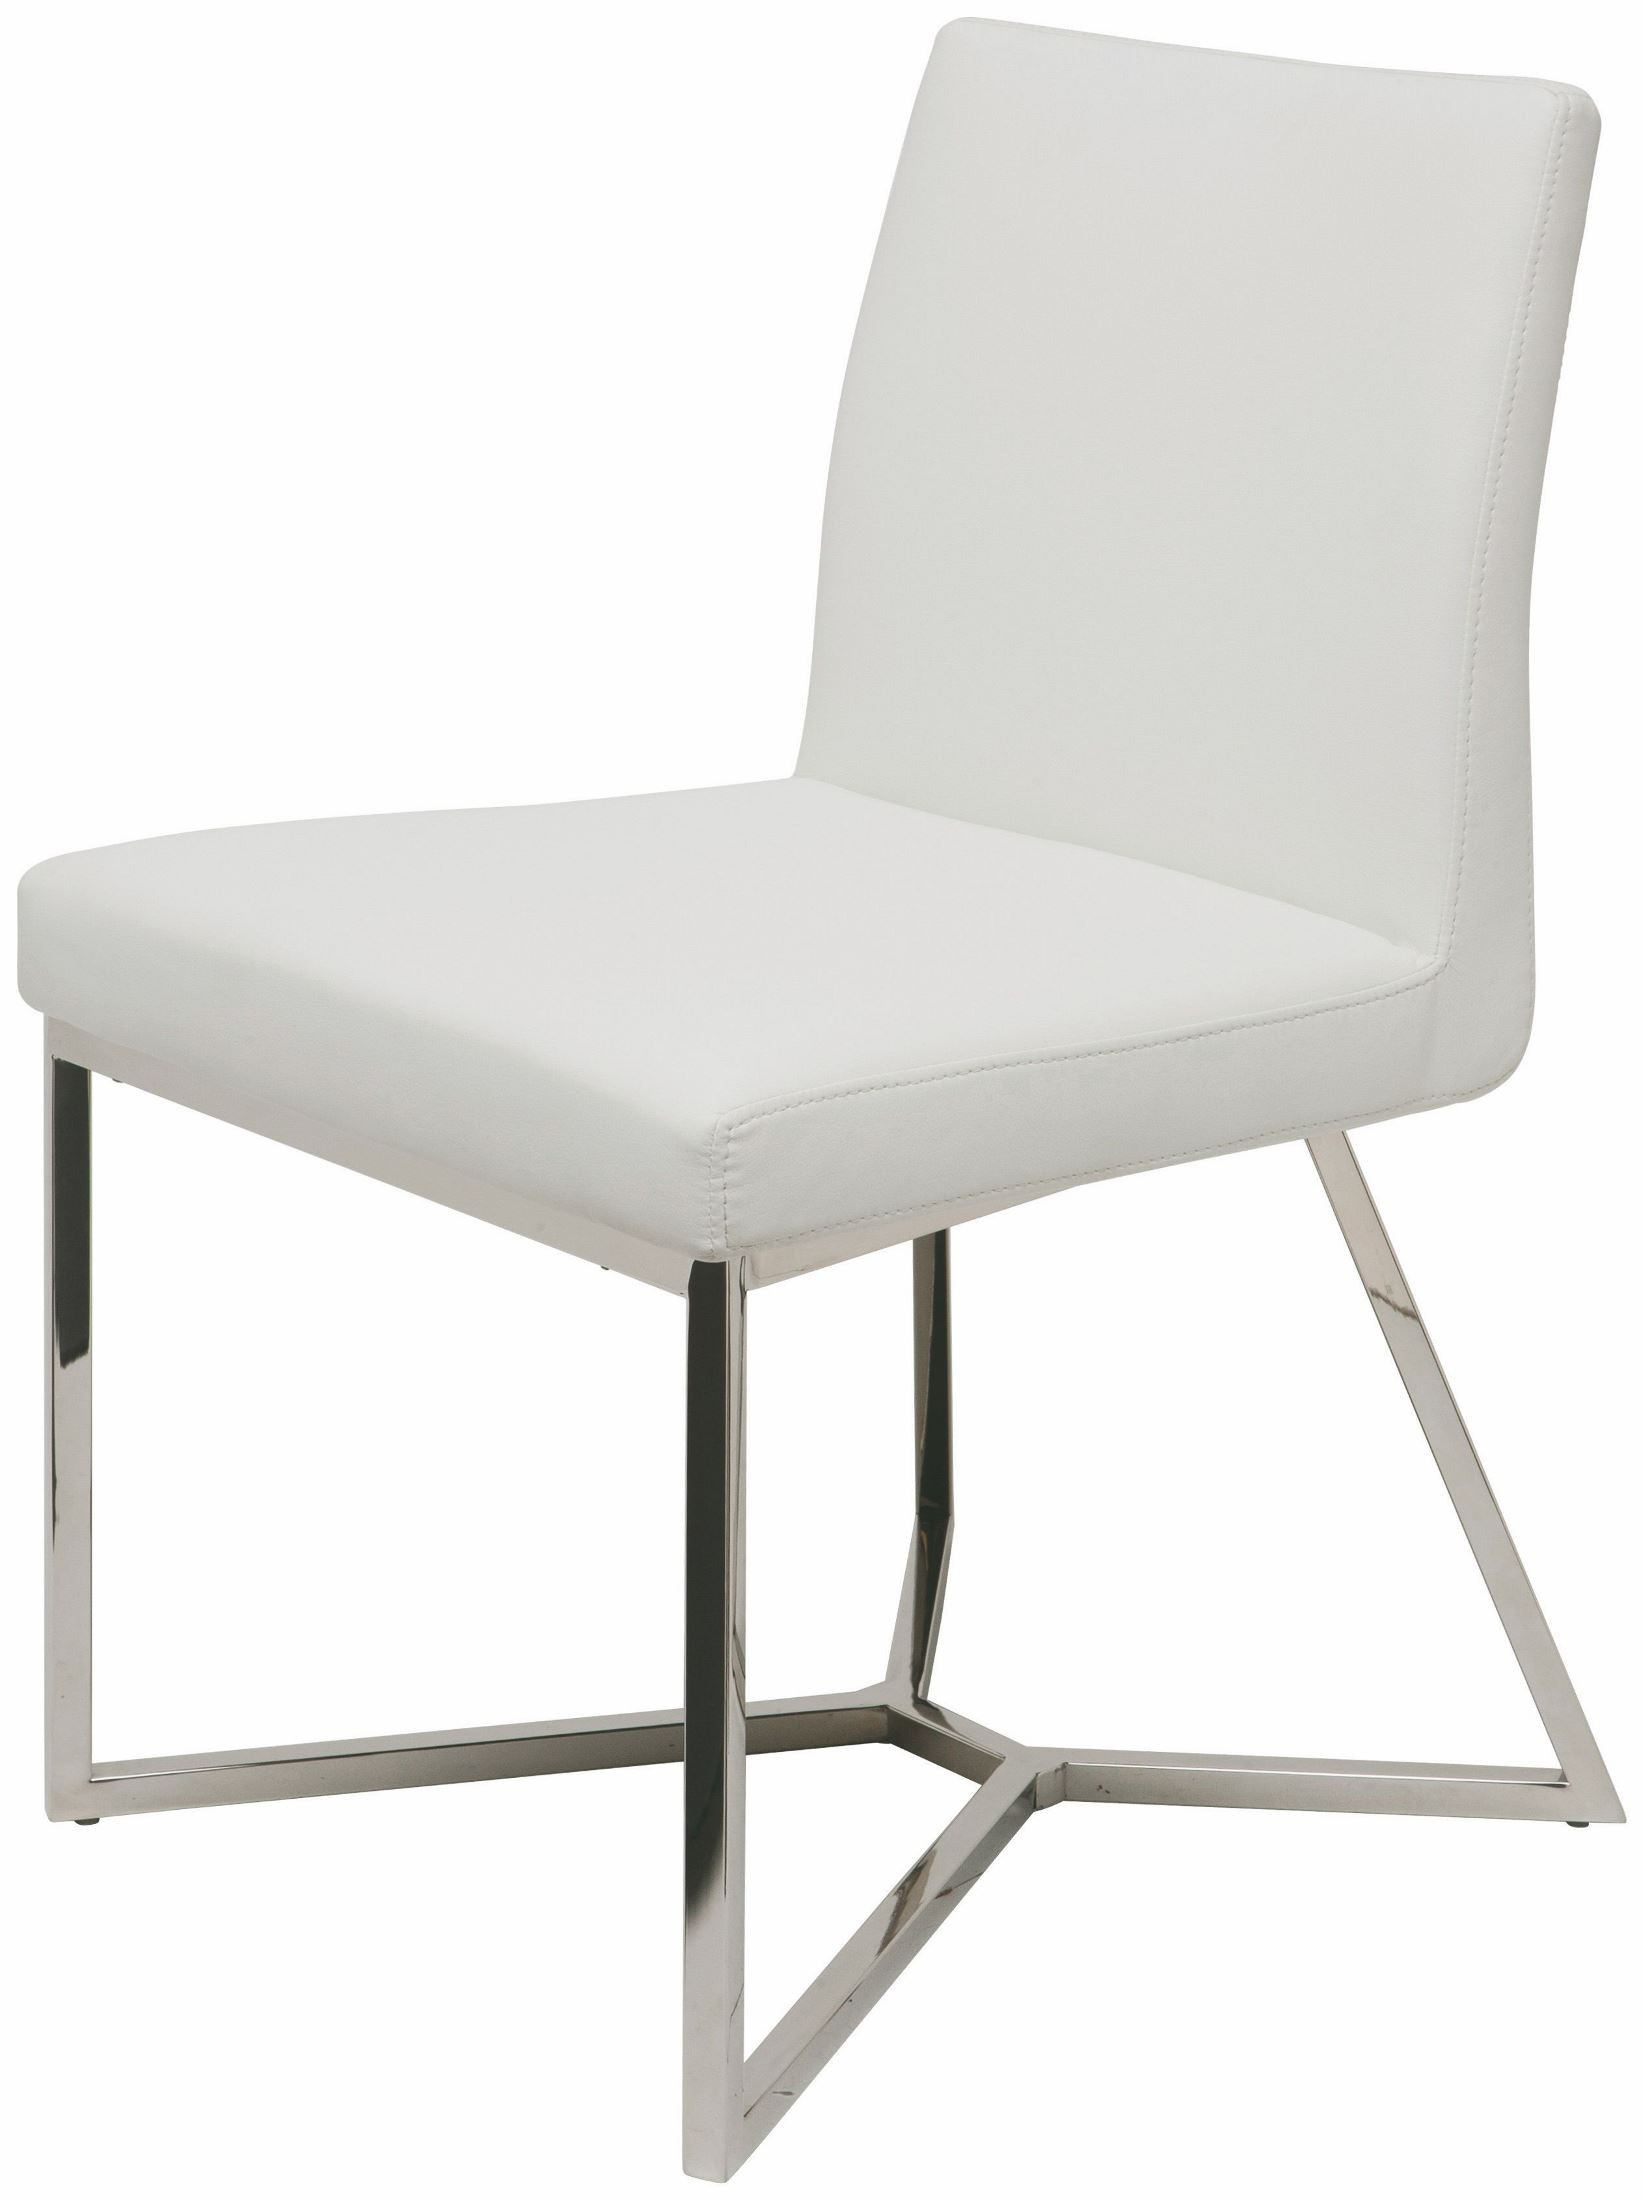 Patrice White Naugahyde Dining Chair From Nuevo Coleman Furniture